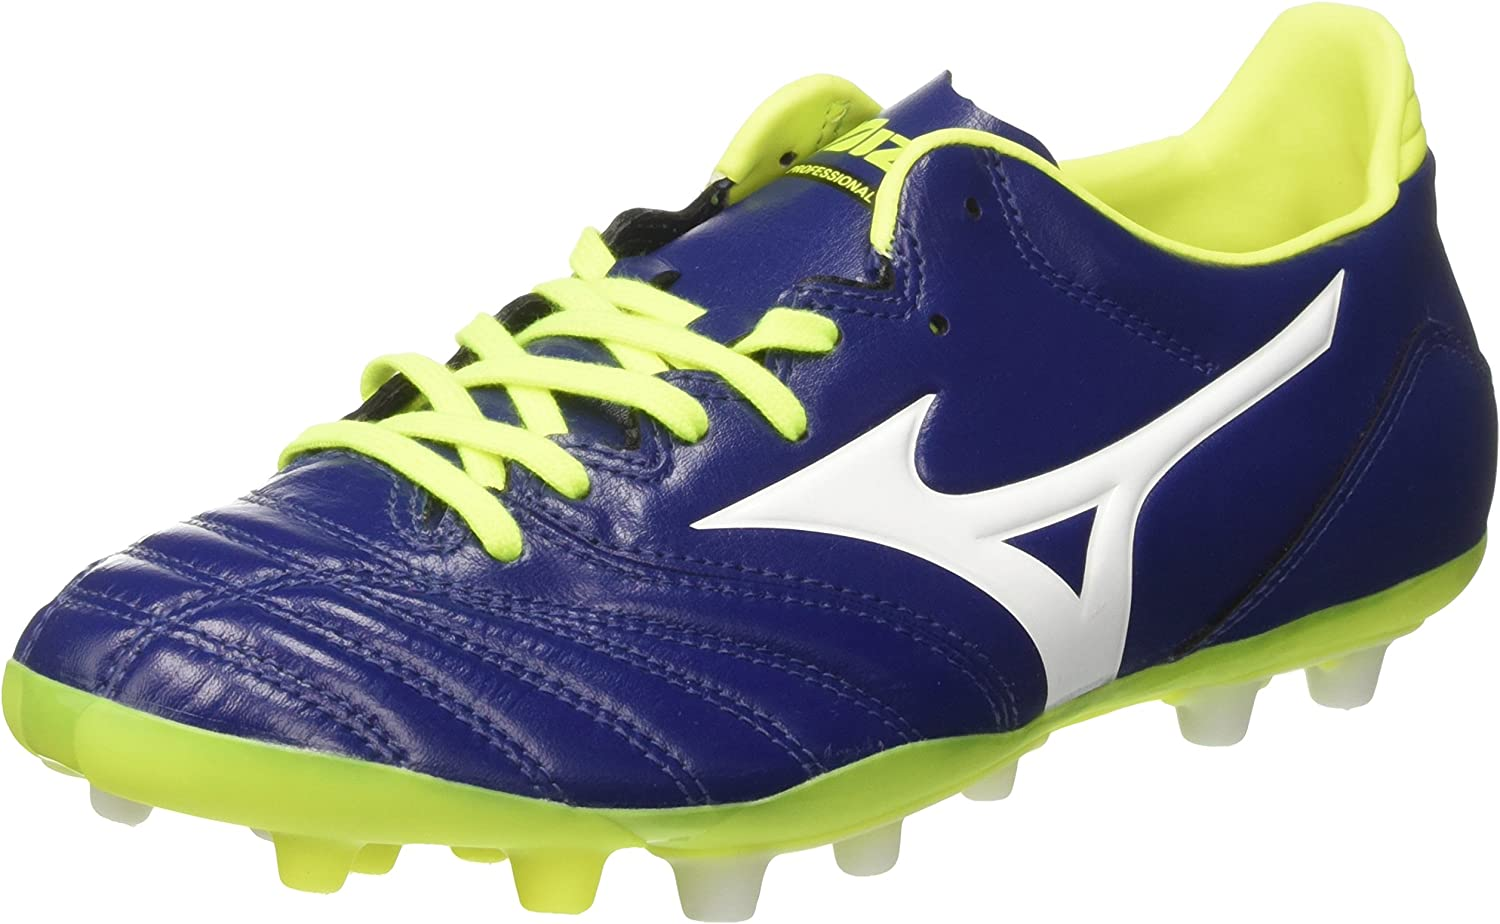 Mizuno Men's Morelia Neo Kl Ag Footbal shoes